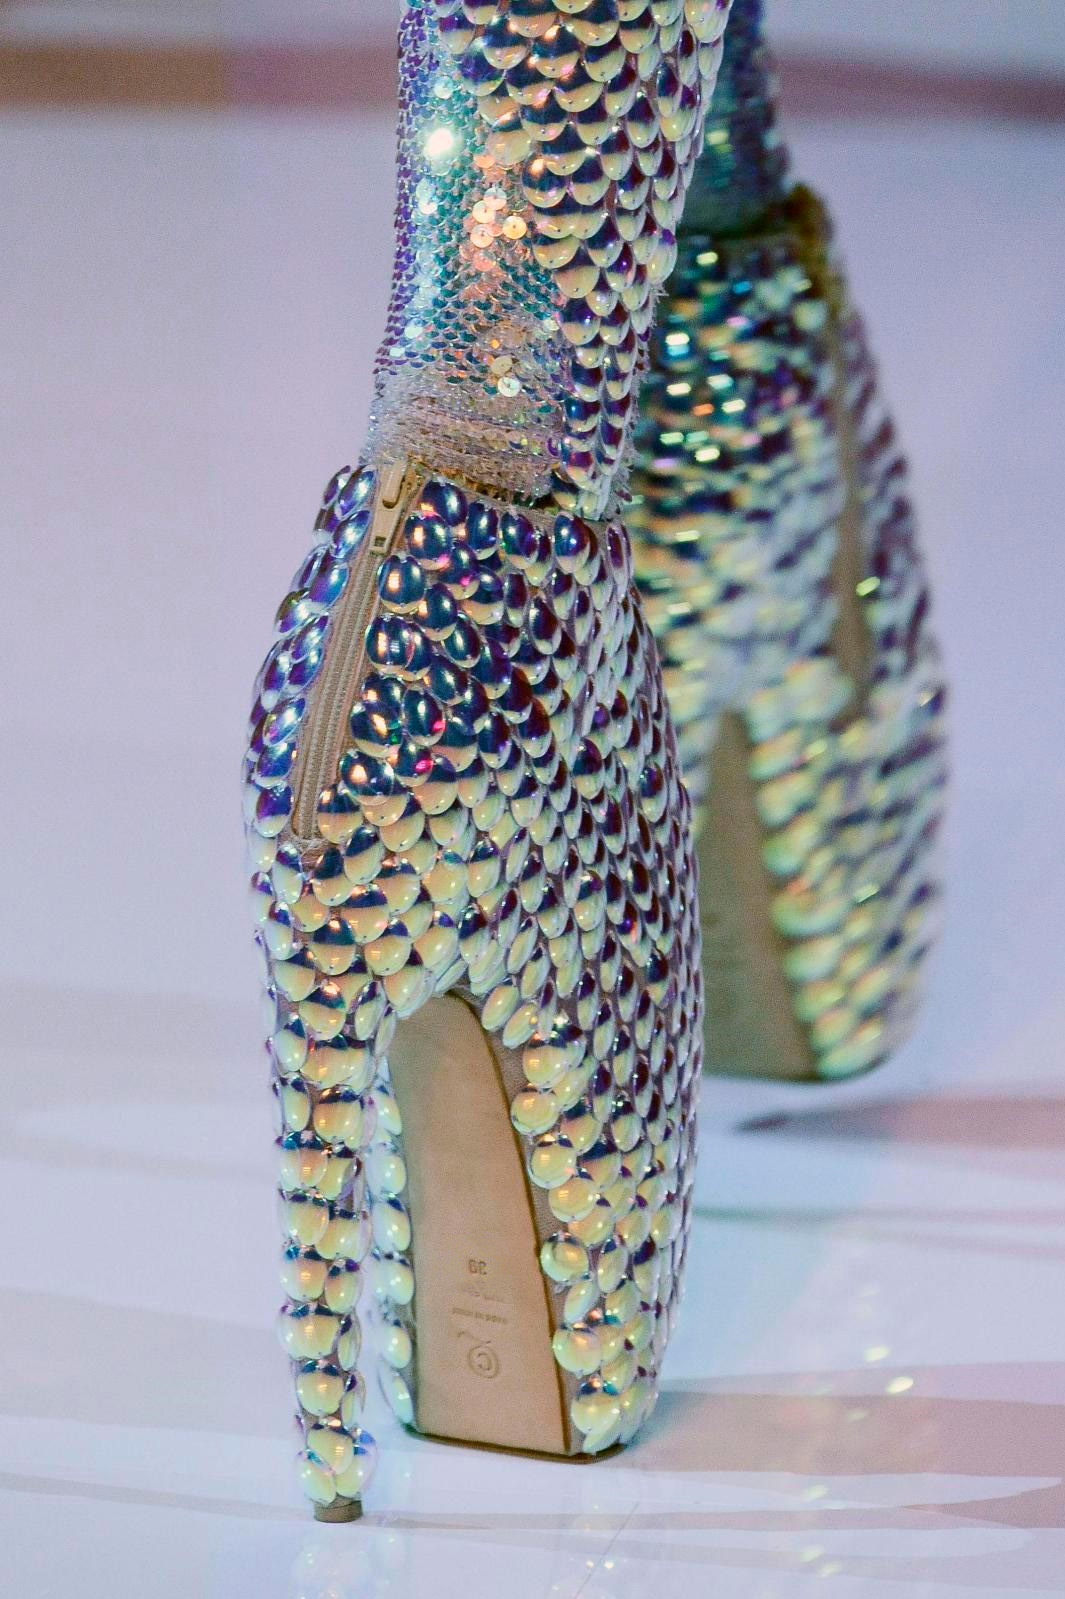 alexander-mcqueen-alien-claw-armadillo-lobster-shoe ...